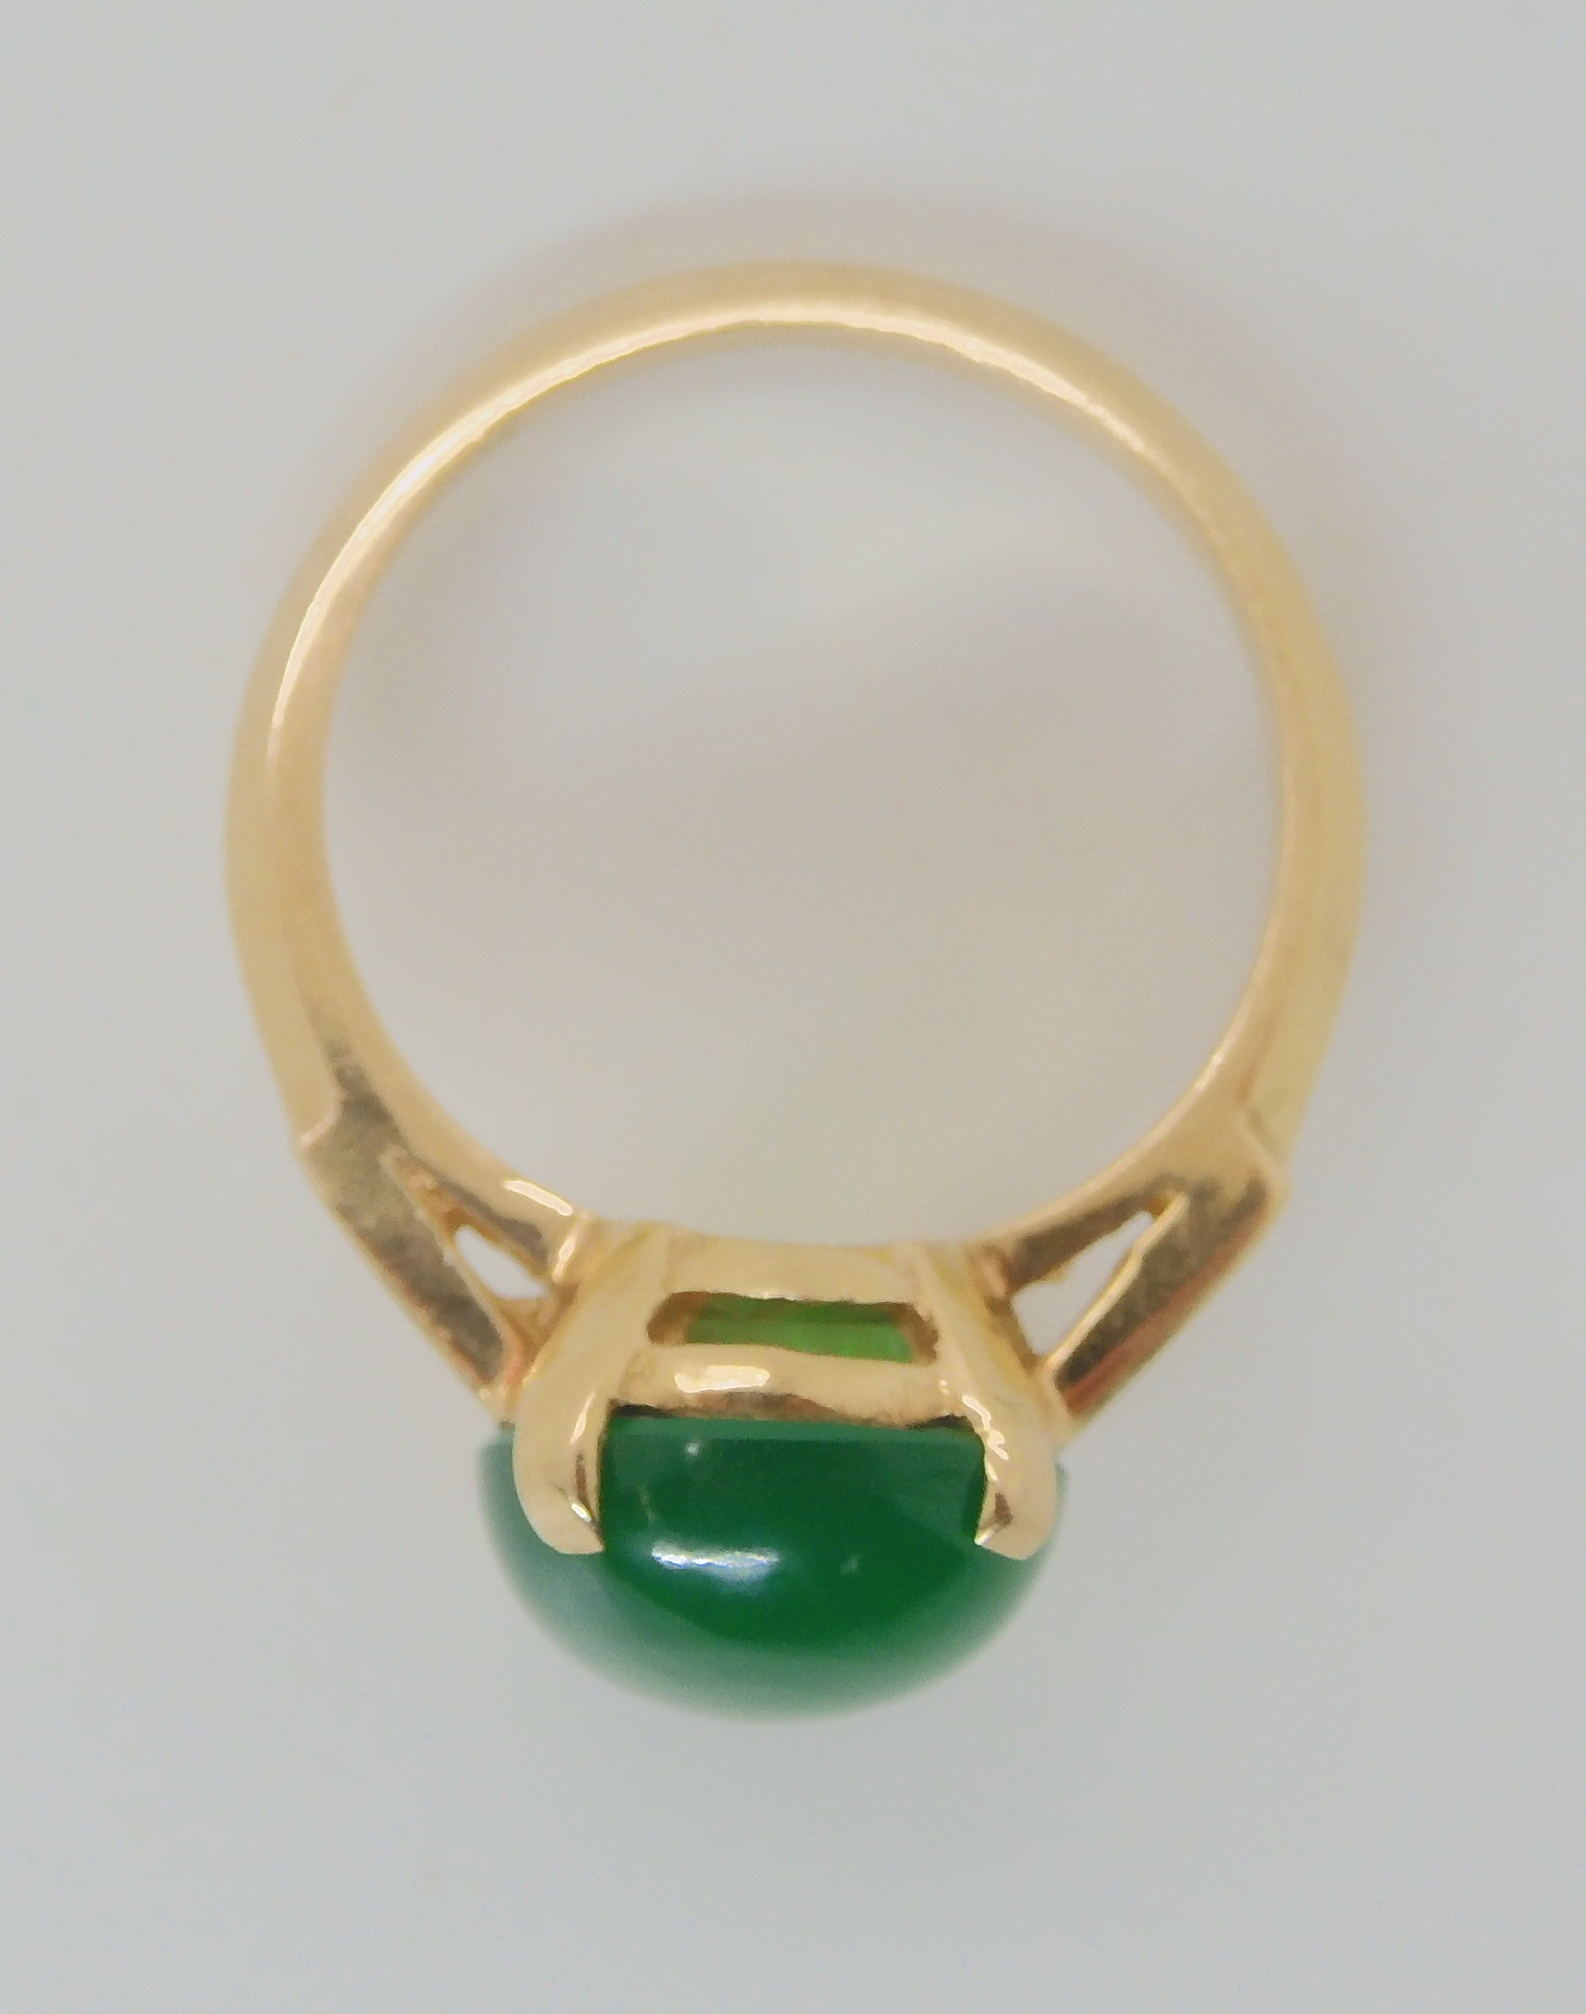 A 14K GREEN HARDSTONE SET RING Finger size M, weight 3.6gms Condition Report: Available upon - Image 2 of 3